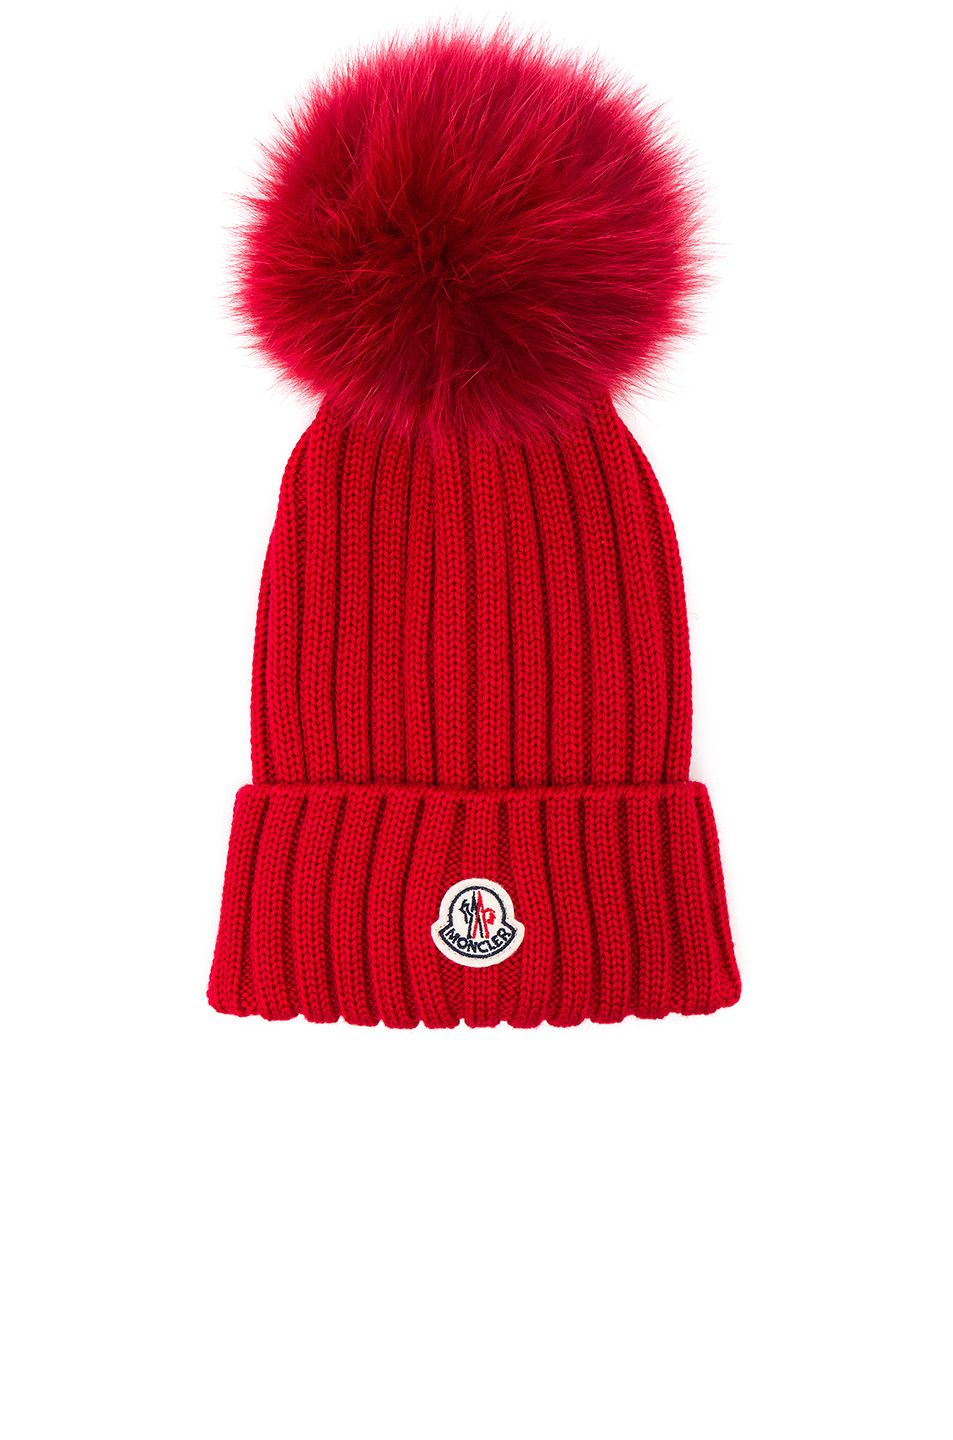 0db1cea705a3c MONCLER Berretto Beanie With Fox Fur Pom.  moncler